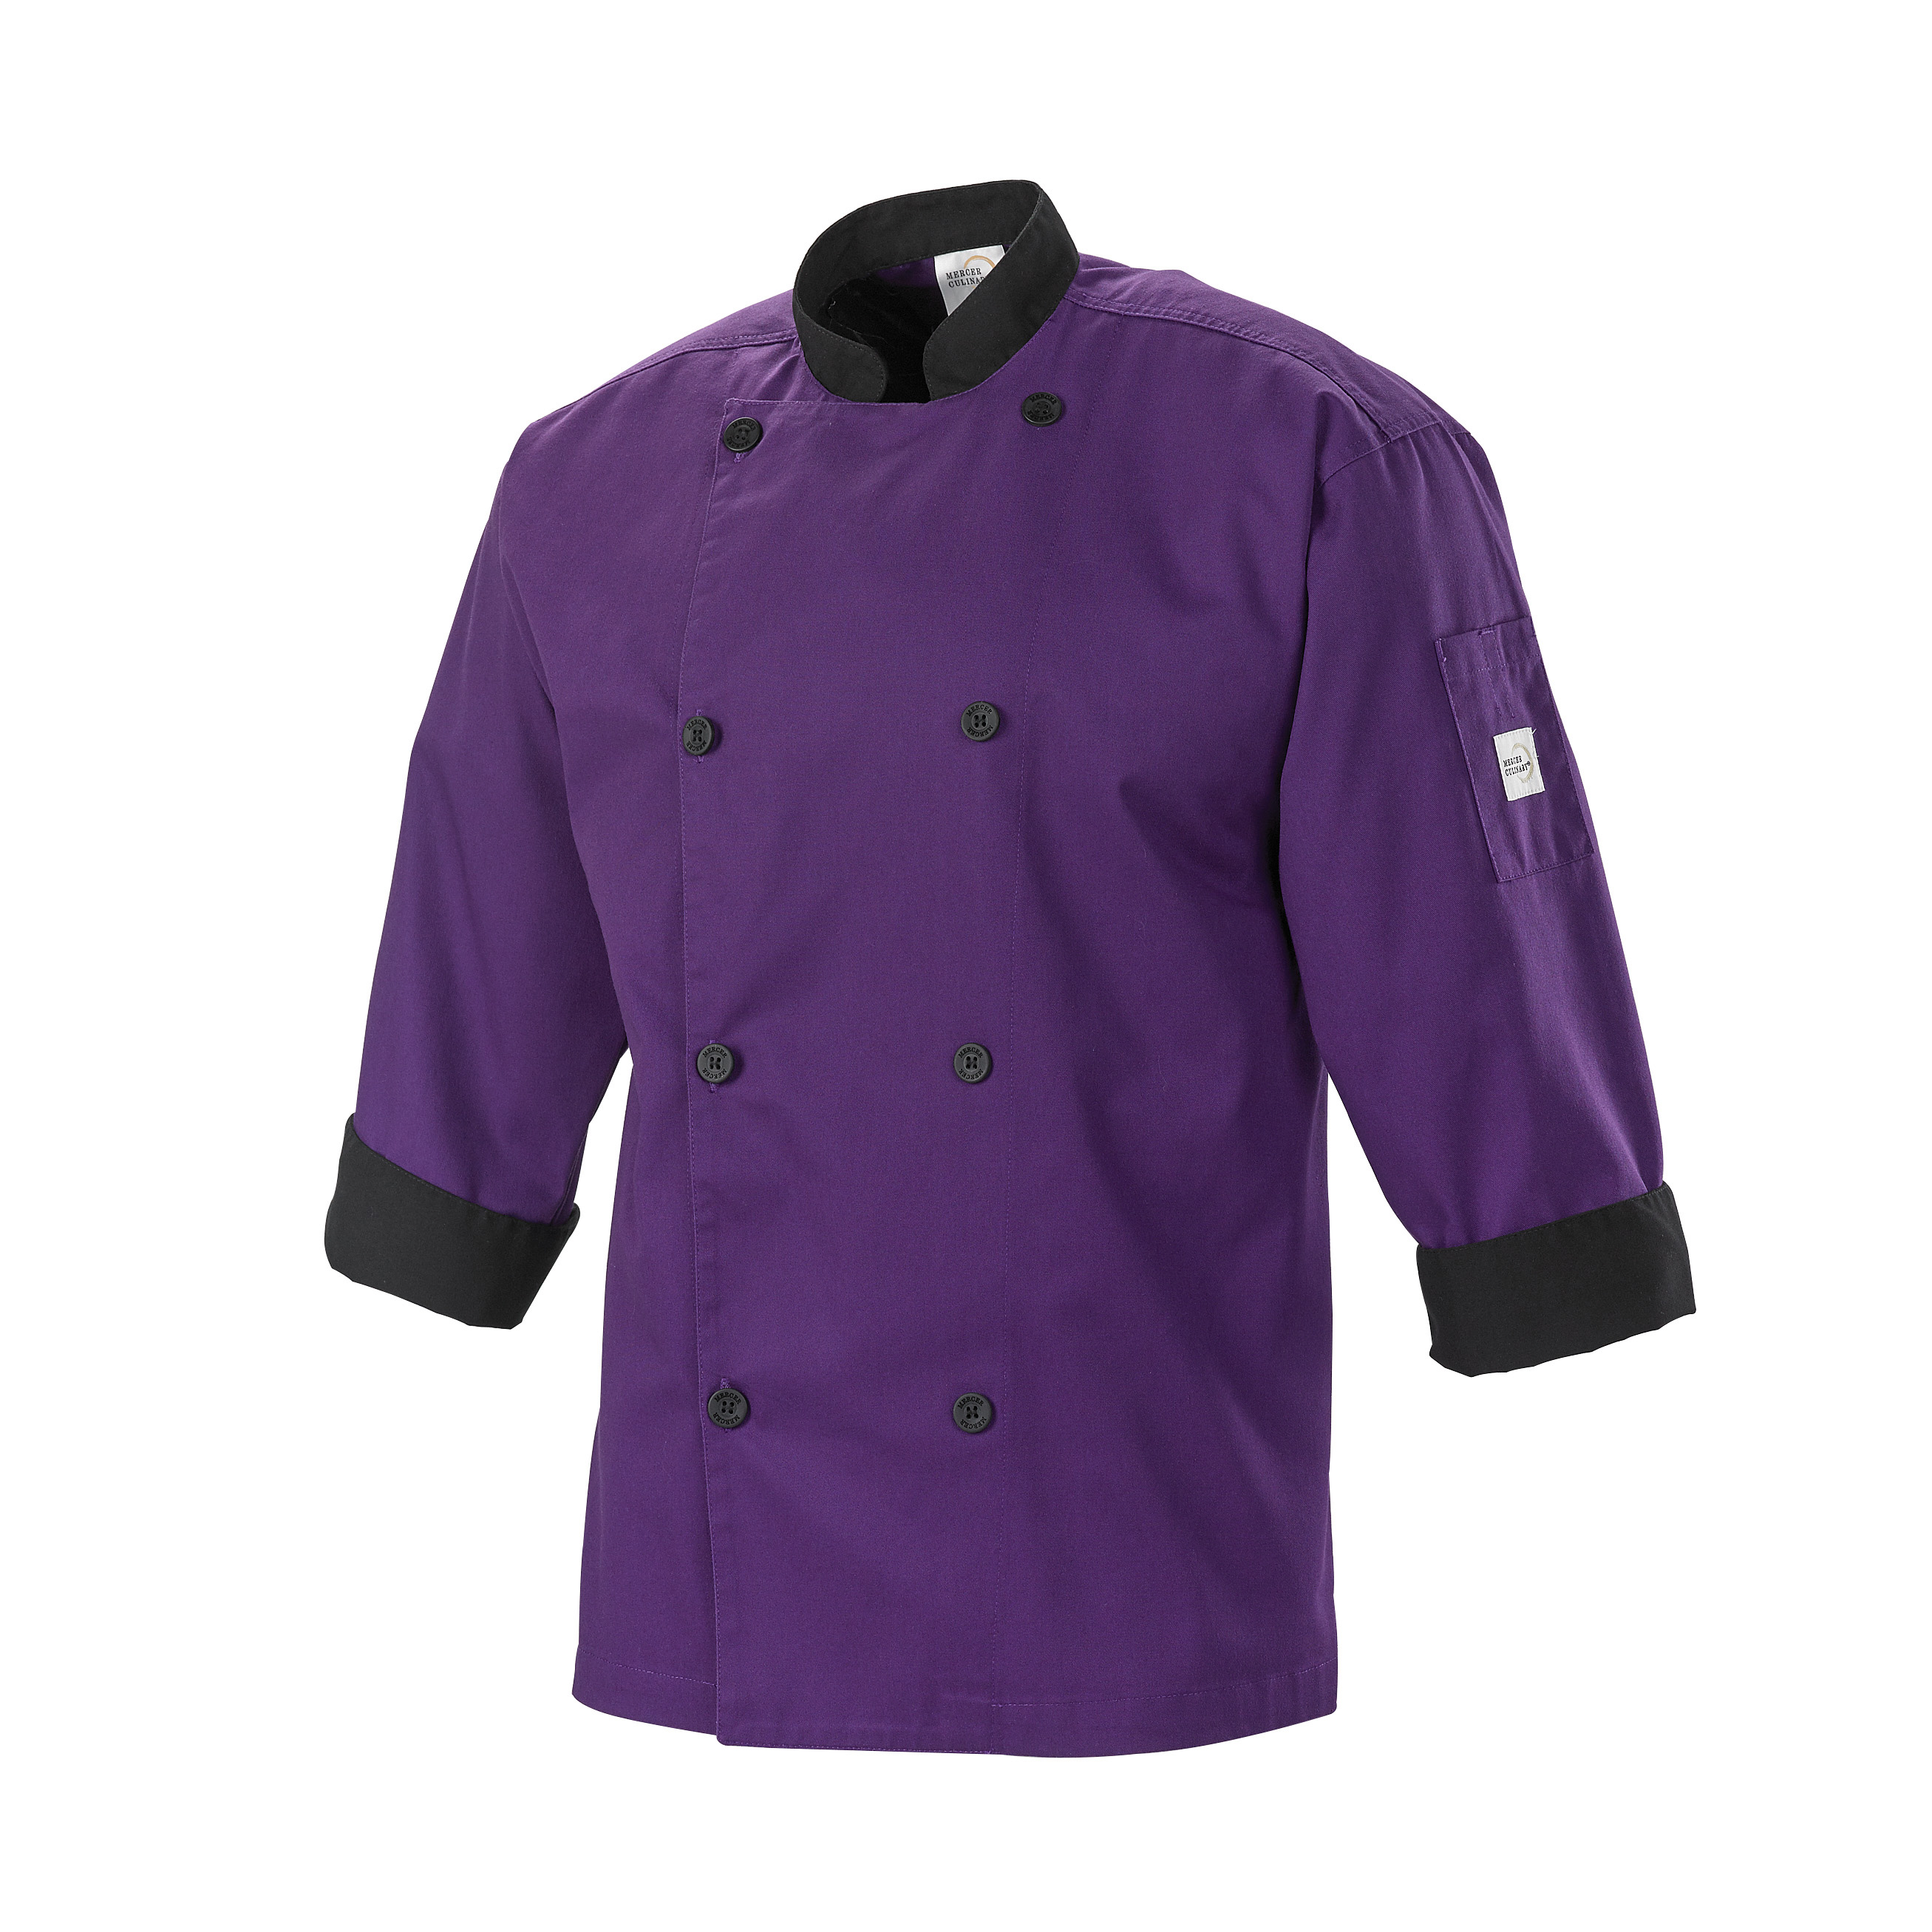 Mercer Culinary M60018PUBS chef's coat